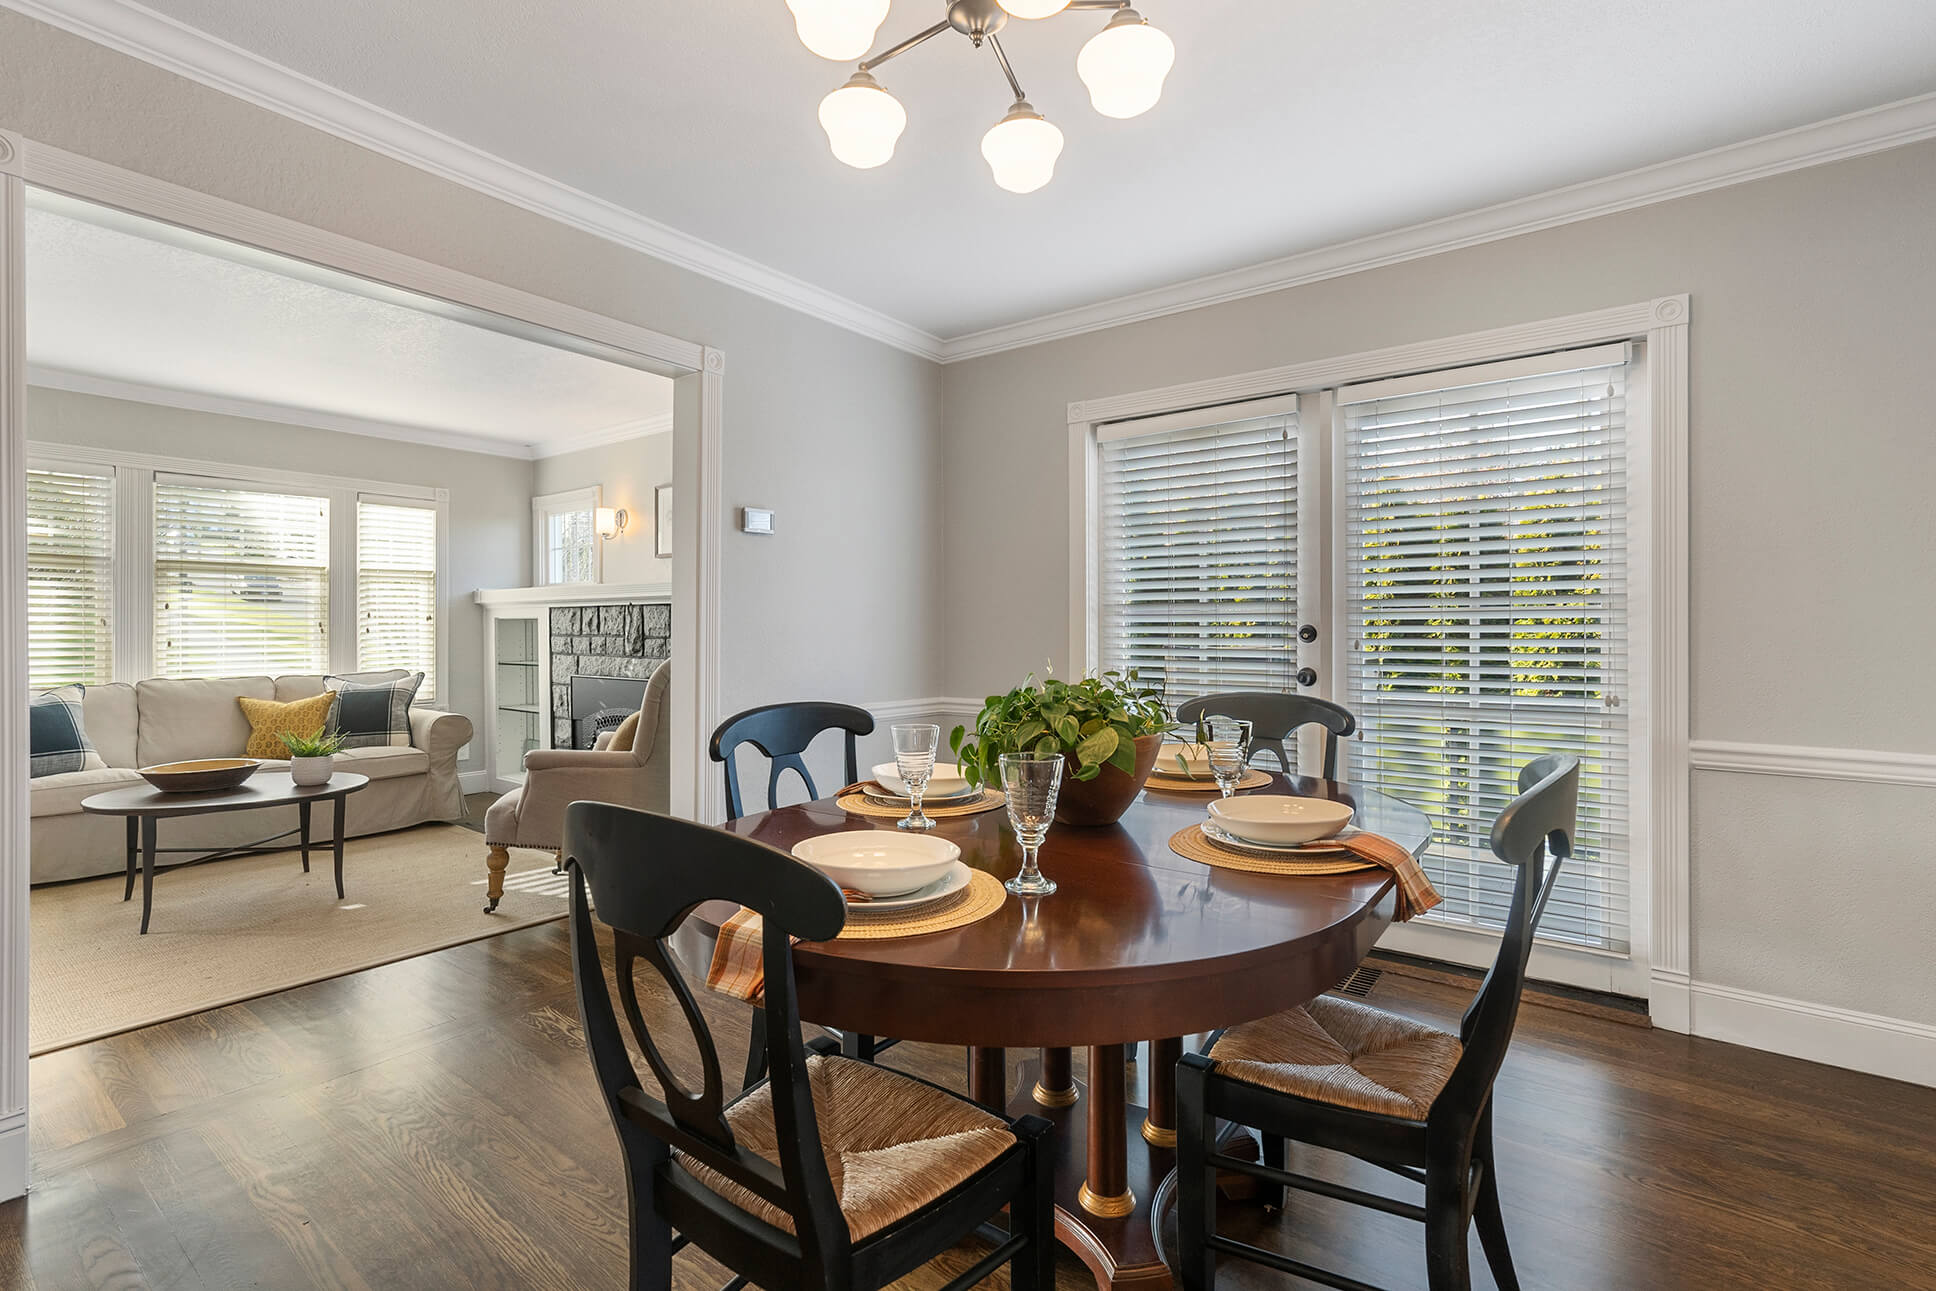 Formal dining room with French doors to view deck